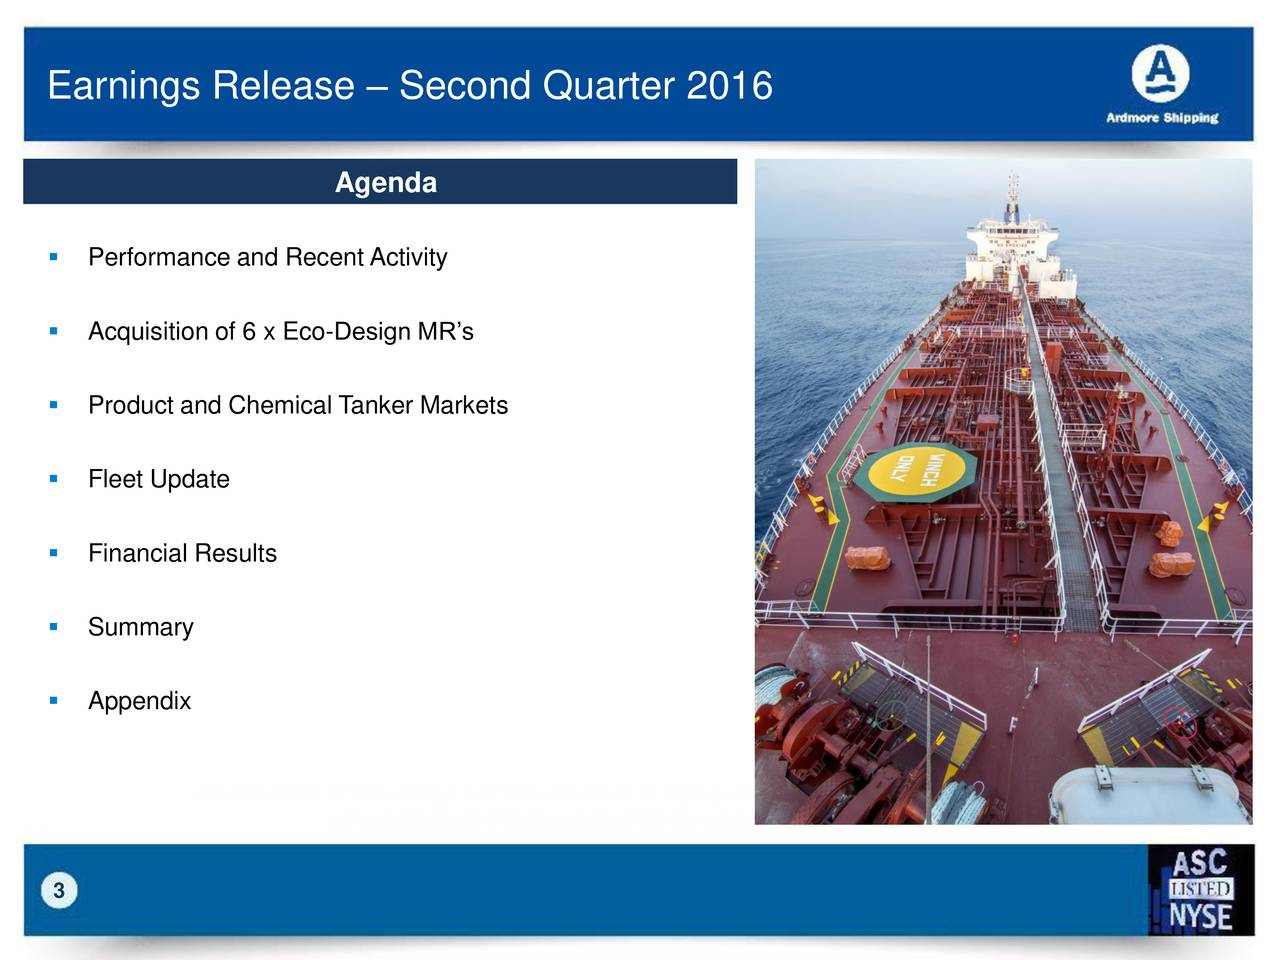 Agenda Performance and Recent Activity Acquisition of 6 x Eco-Design MRs Product and Chemical Tanker Markets Fleet Update Financial Results Summary Appendix Modern Fleet of Eco-design and Eco-mod built at high quality Korean and Japanese shipyards with upgrades to improve fuel efficiency and commercial capability 3